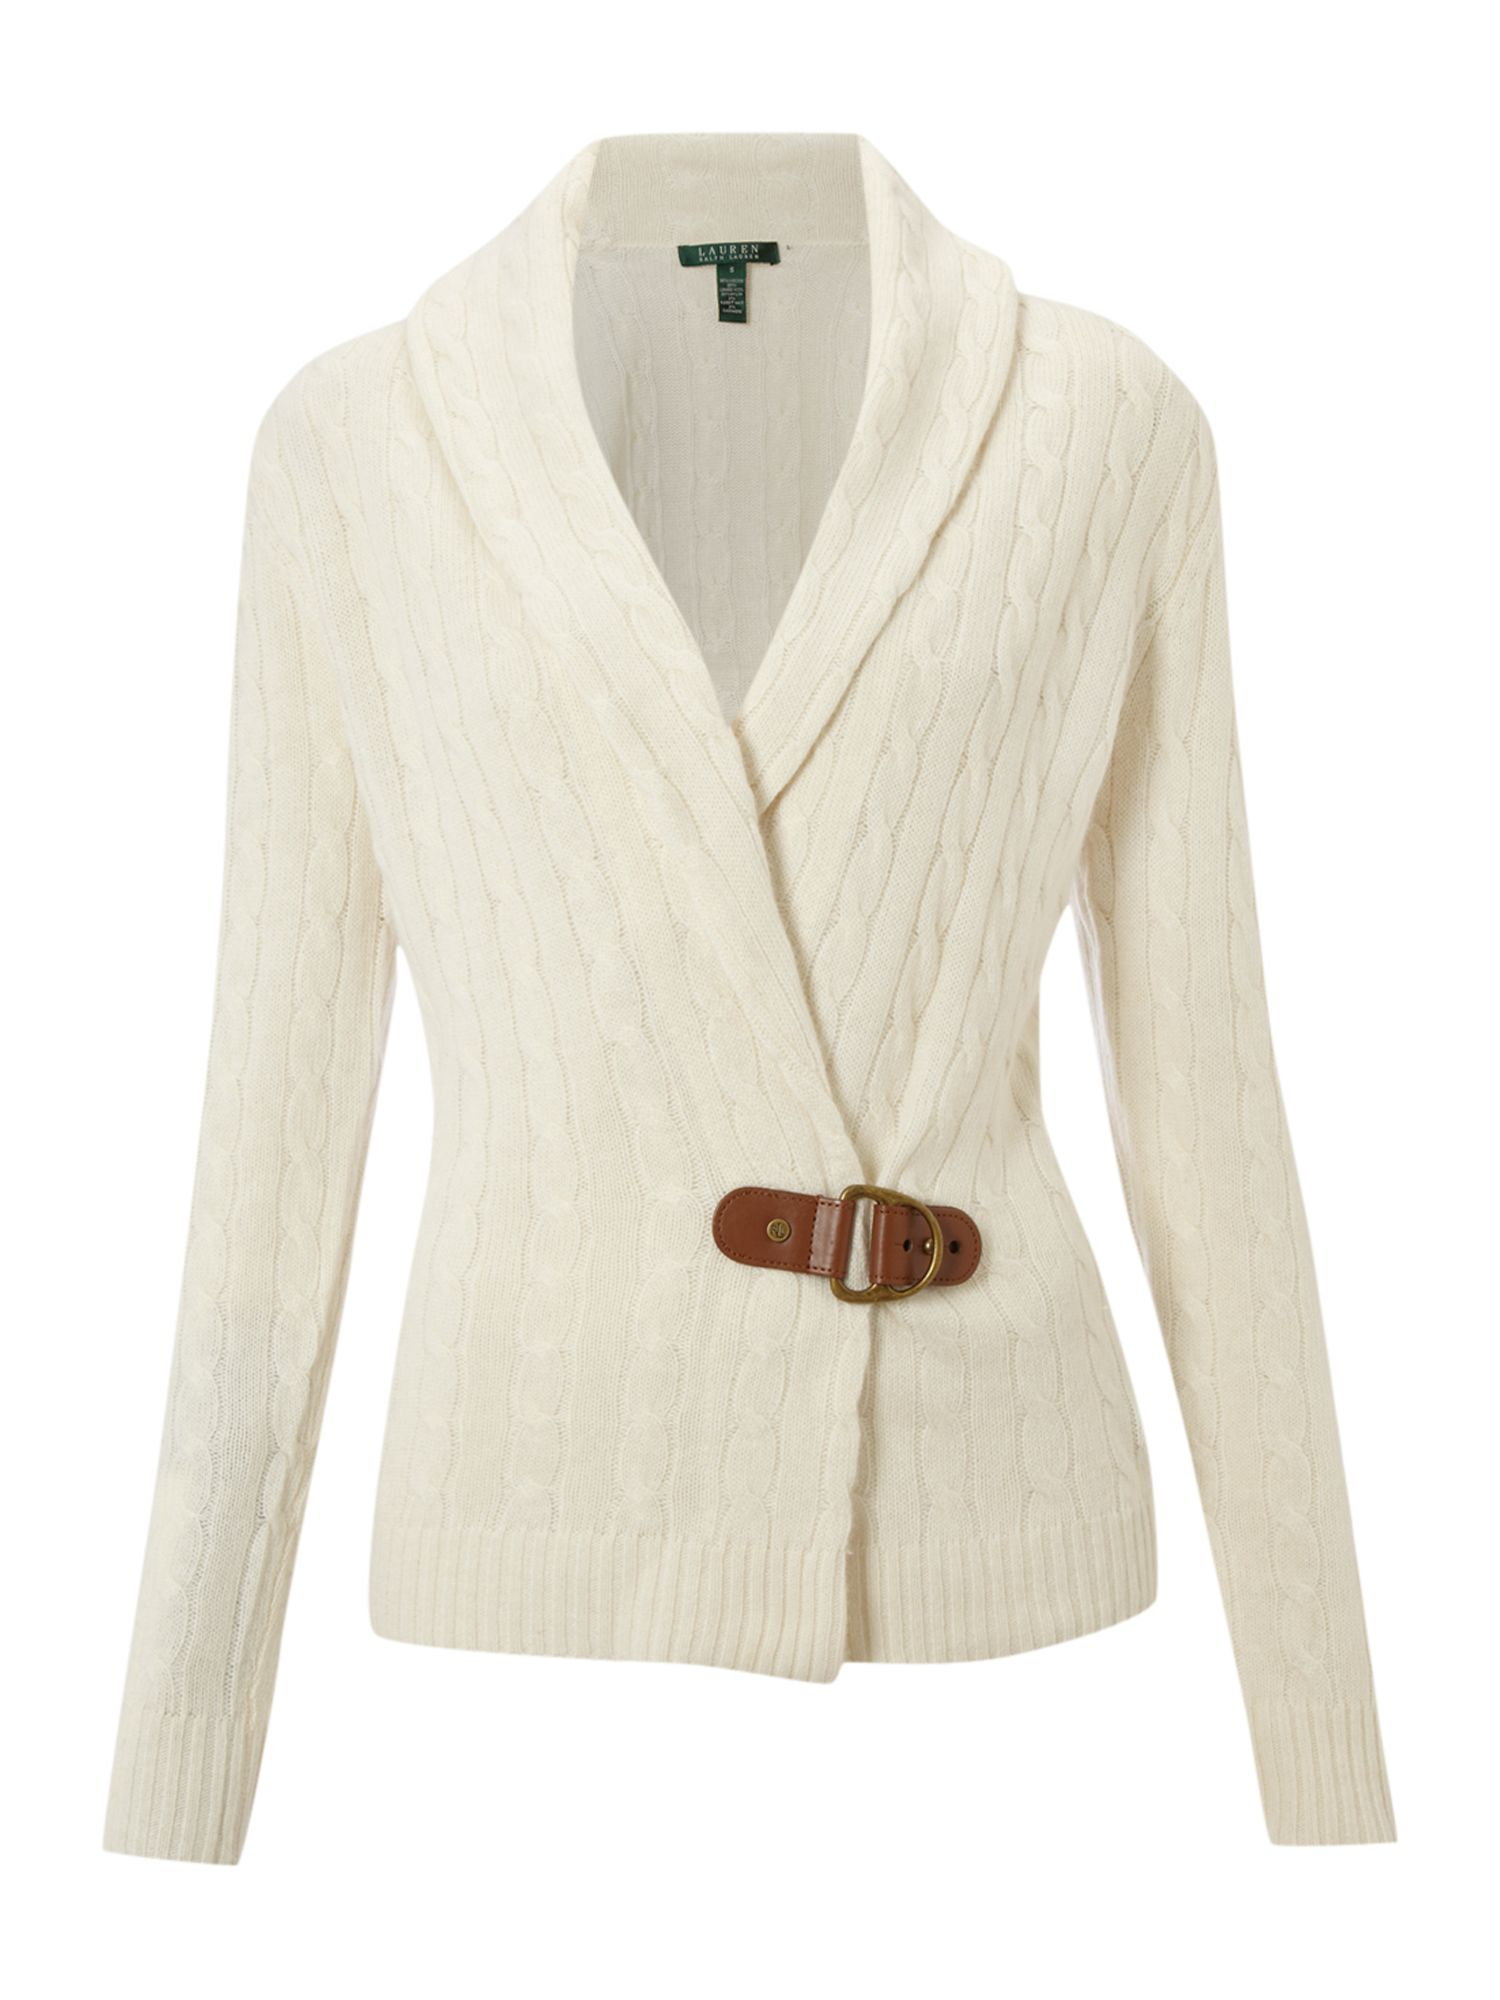 Lauren By Ralph Lauren Wrap Around Cardigan with Buckle in ...